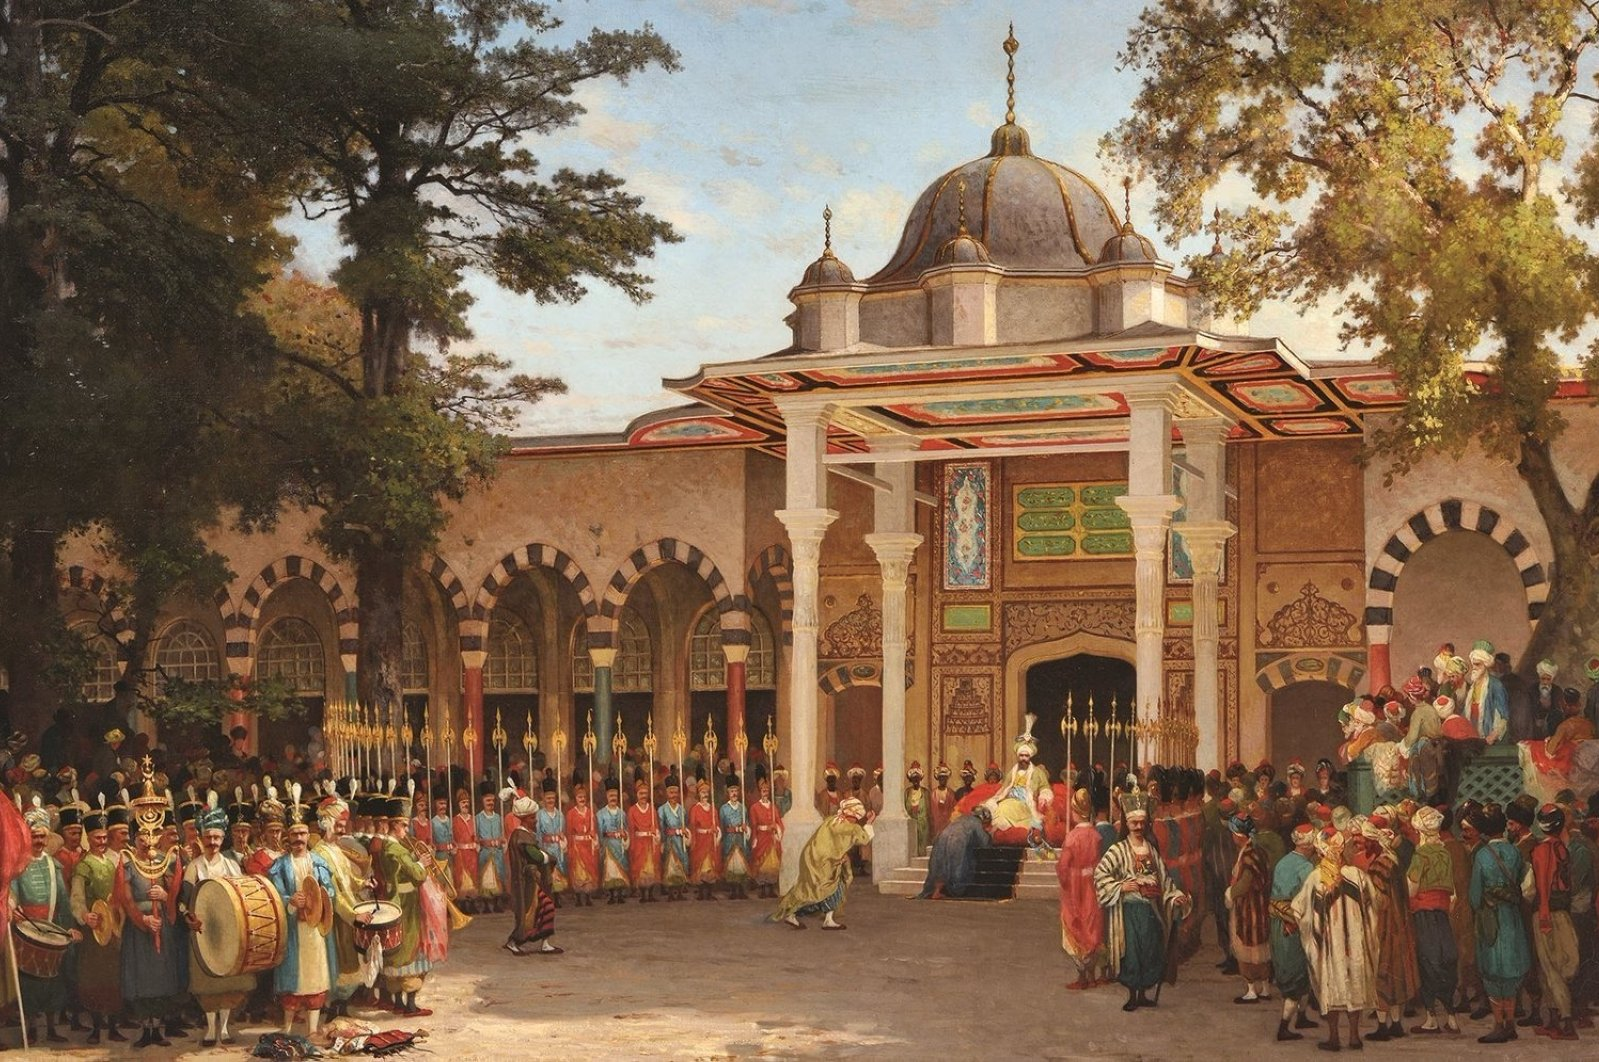 """Germain Fabius Brest depicts a reception held in front of the Gate of Felicity in the second courtyard of Topkapı Palace in his 1865 painting """"Bayram Greetings Reception."""""""